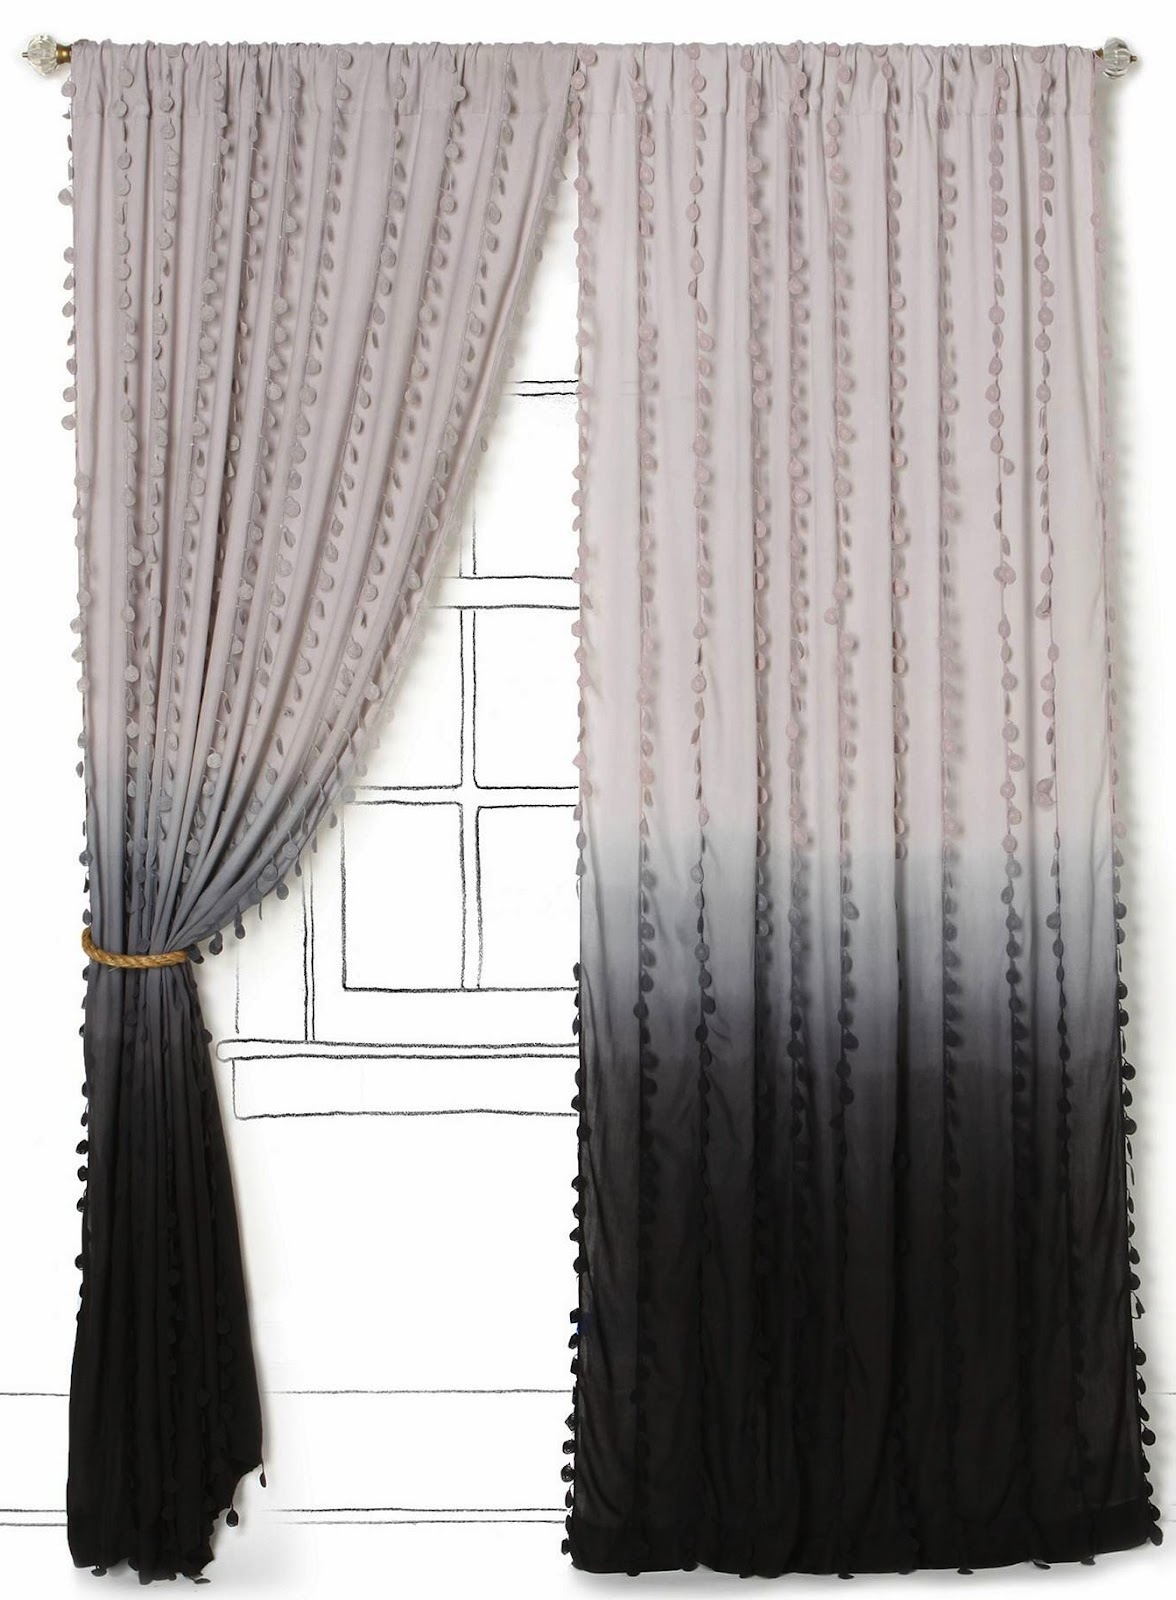 Black ombre curtains - Ombre